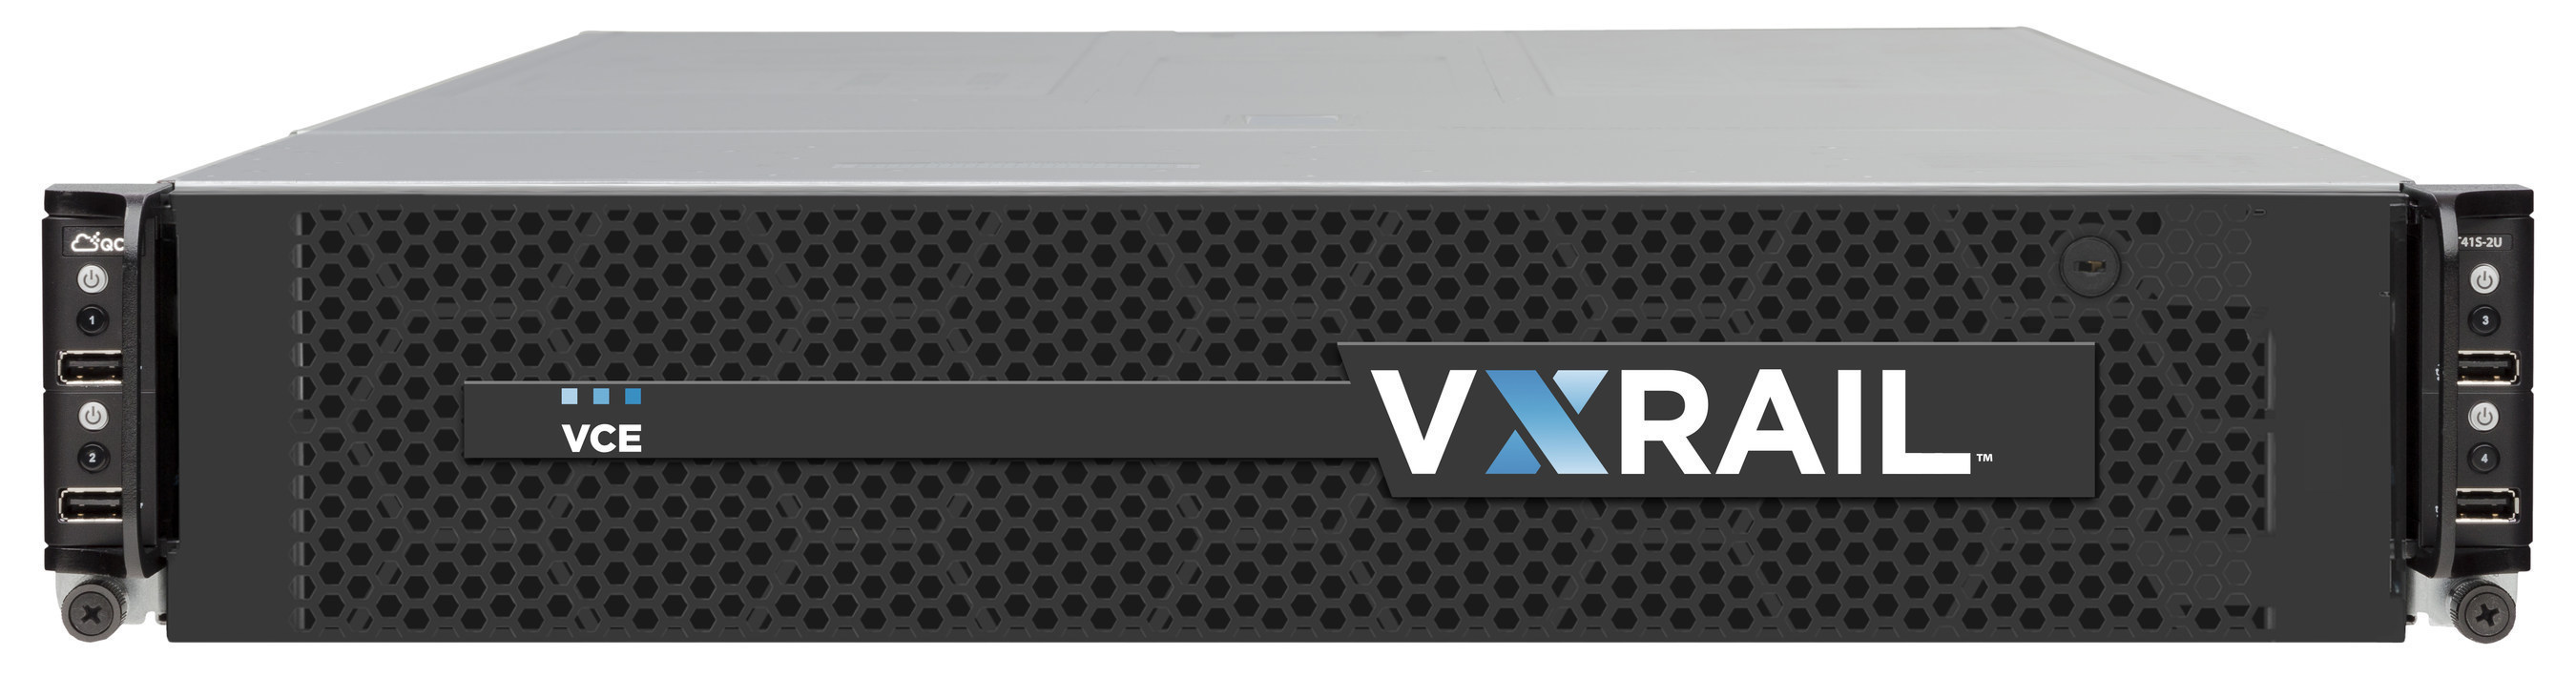 VCE VxRail Appliance